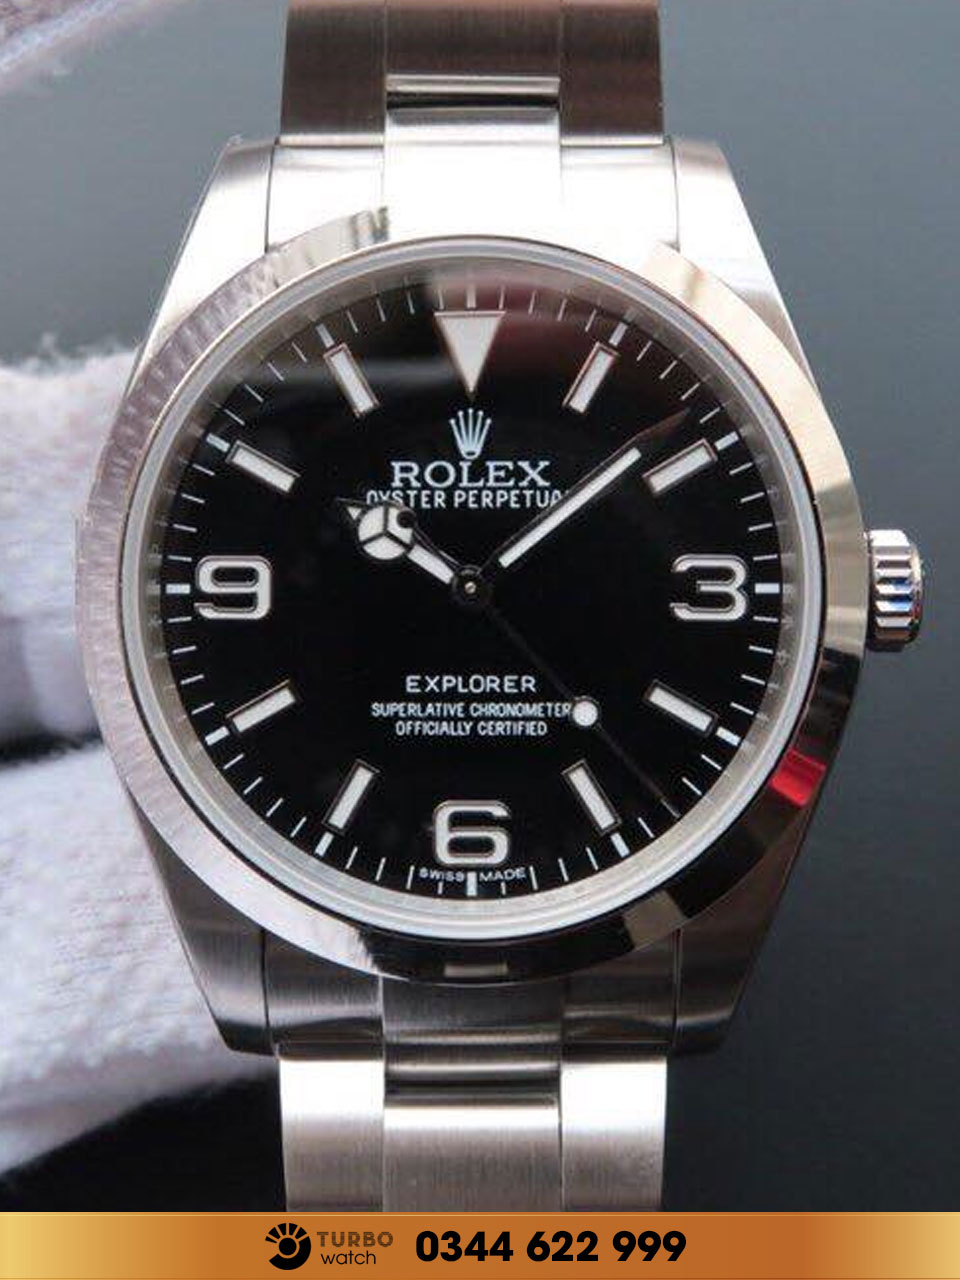 Replica Rolex EXPLORER 214270 WATCH 39 Replica 1:1 cao cấp